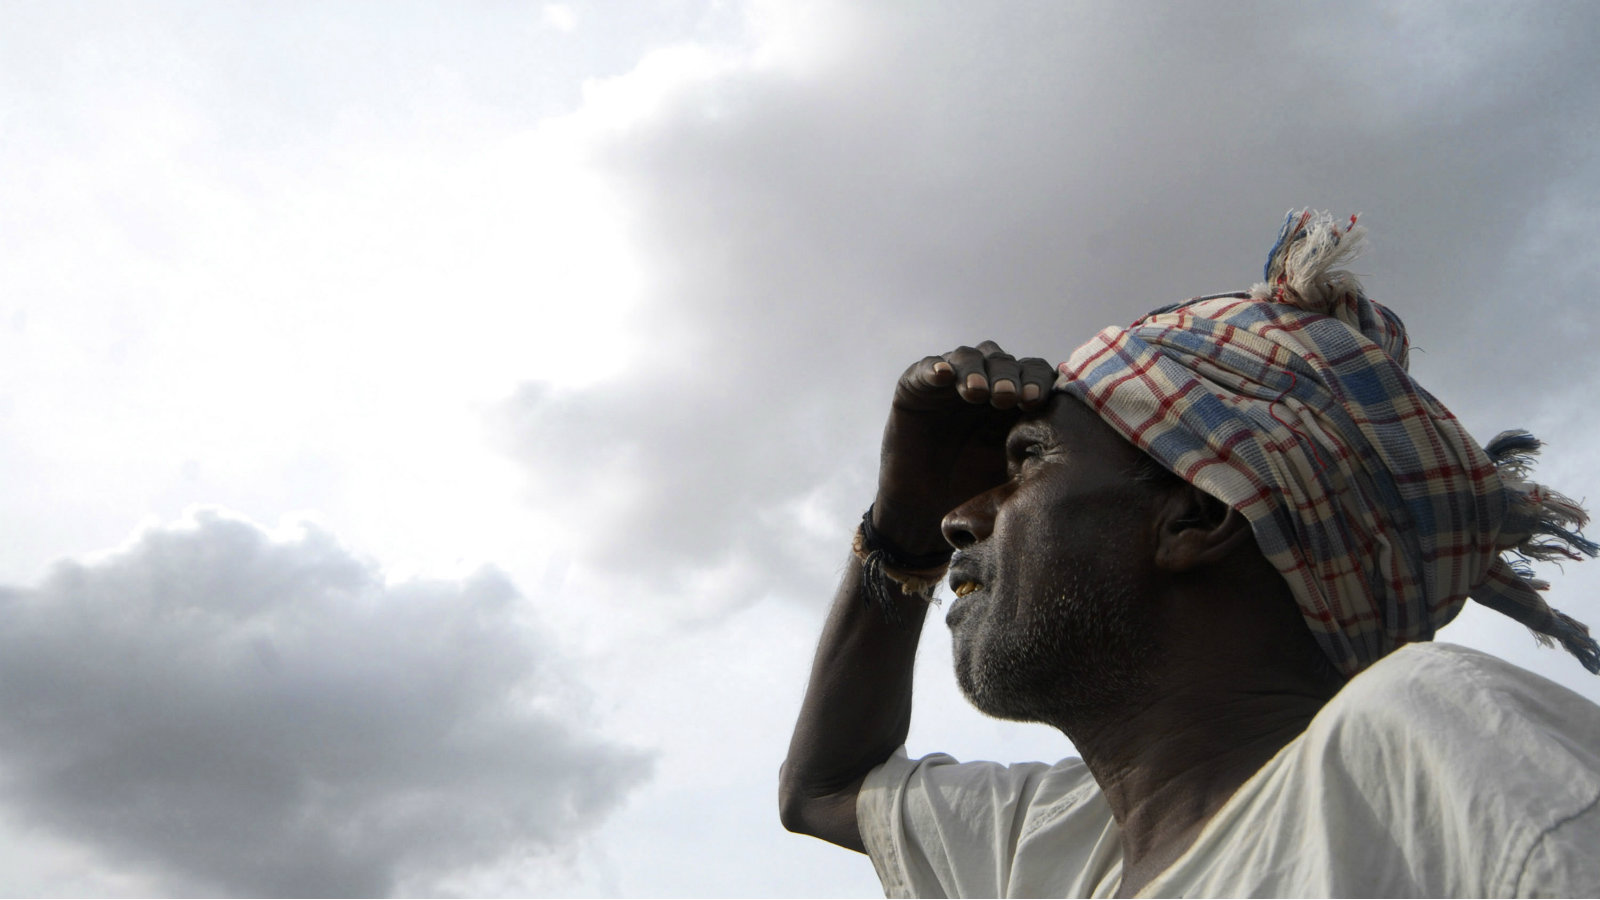 A farmer looks at louring monsoon clouds on the outskirts of Hyderabad, India, Monday, July 6, 2009. India will boost spending on irrigation and roll out more jobs and loans for farmers to spur the rural economy and lift farm sector growth to 4 percent, Finance Minister Pranab Mukherjee said presenting the new governments annual budget Monday.